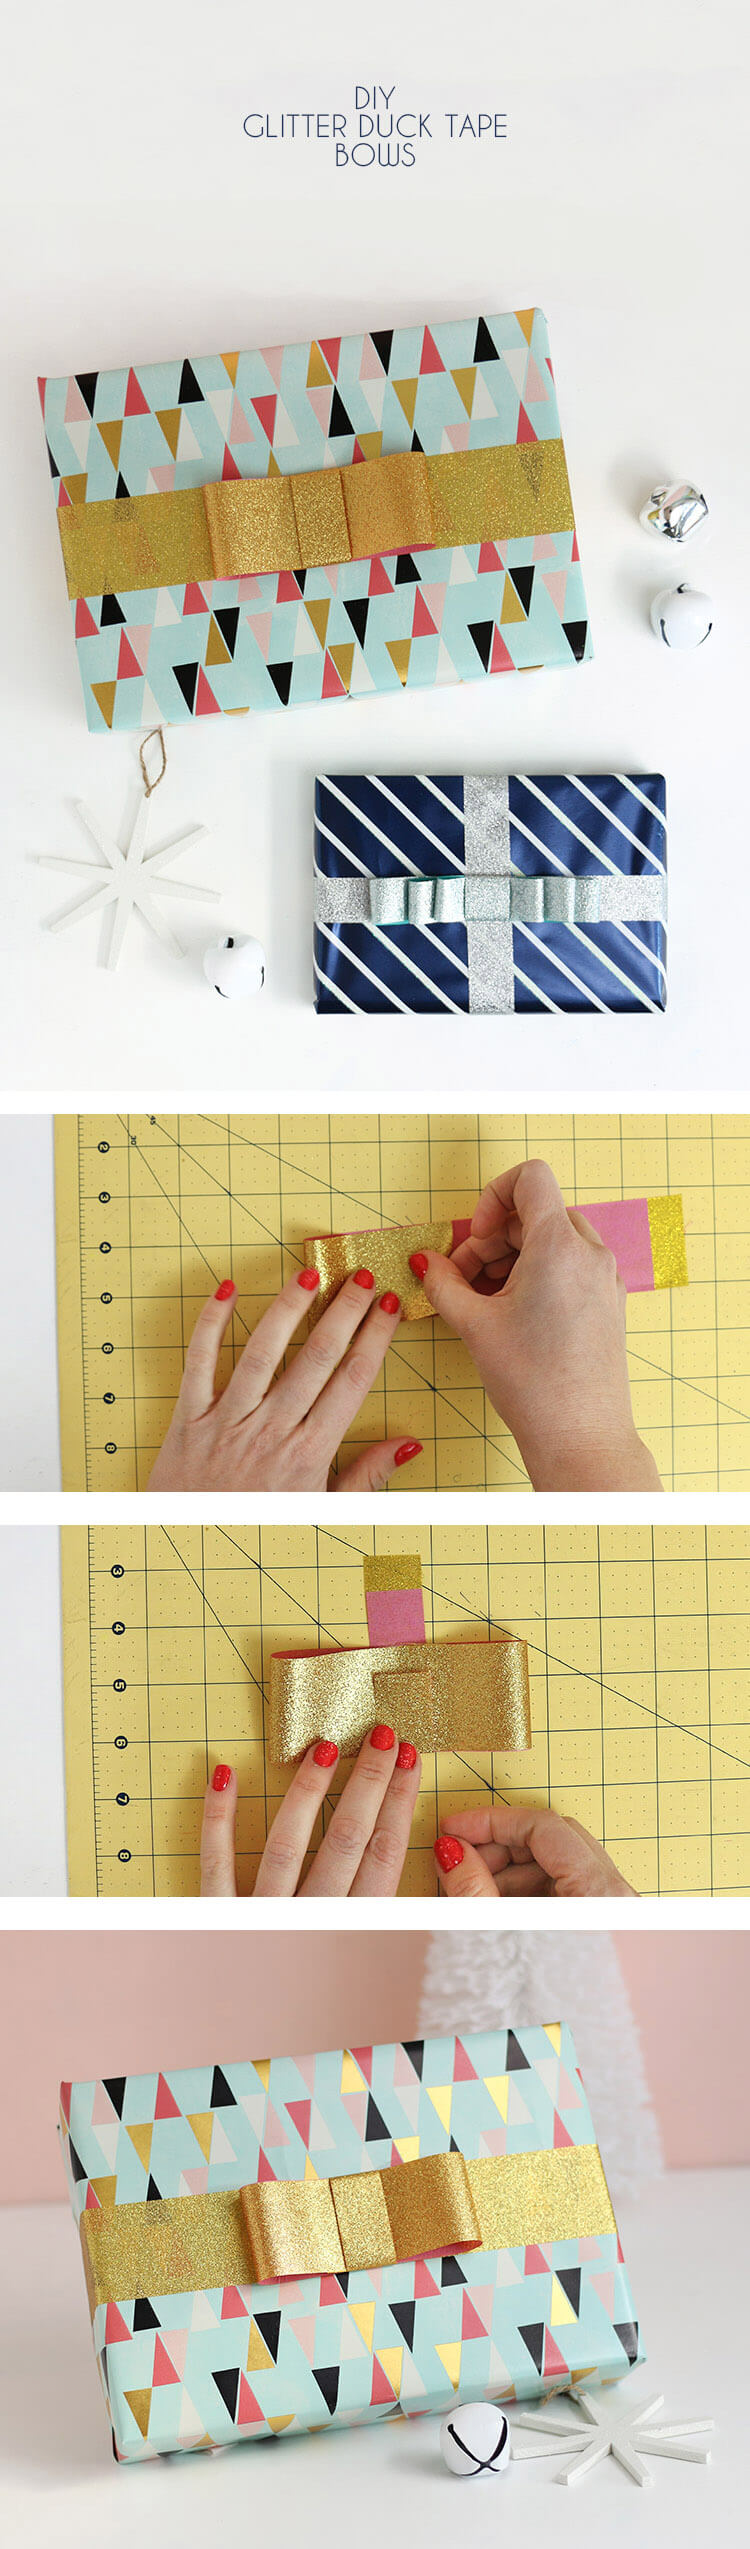 learn how to make DIY tape bows using glitter duck tape - so cute and easy to make!